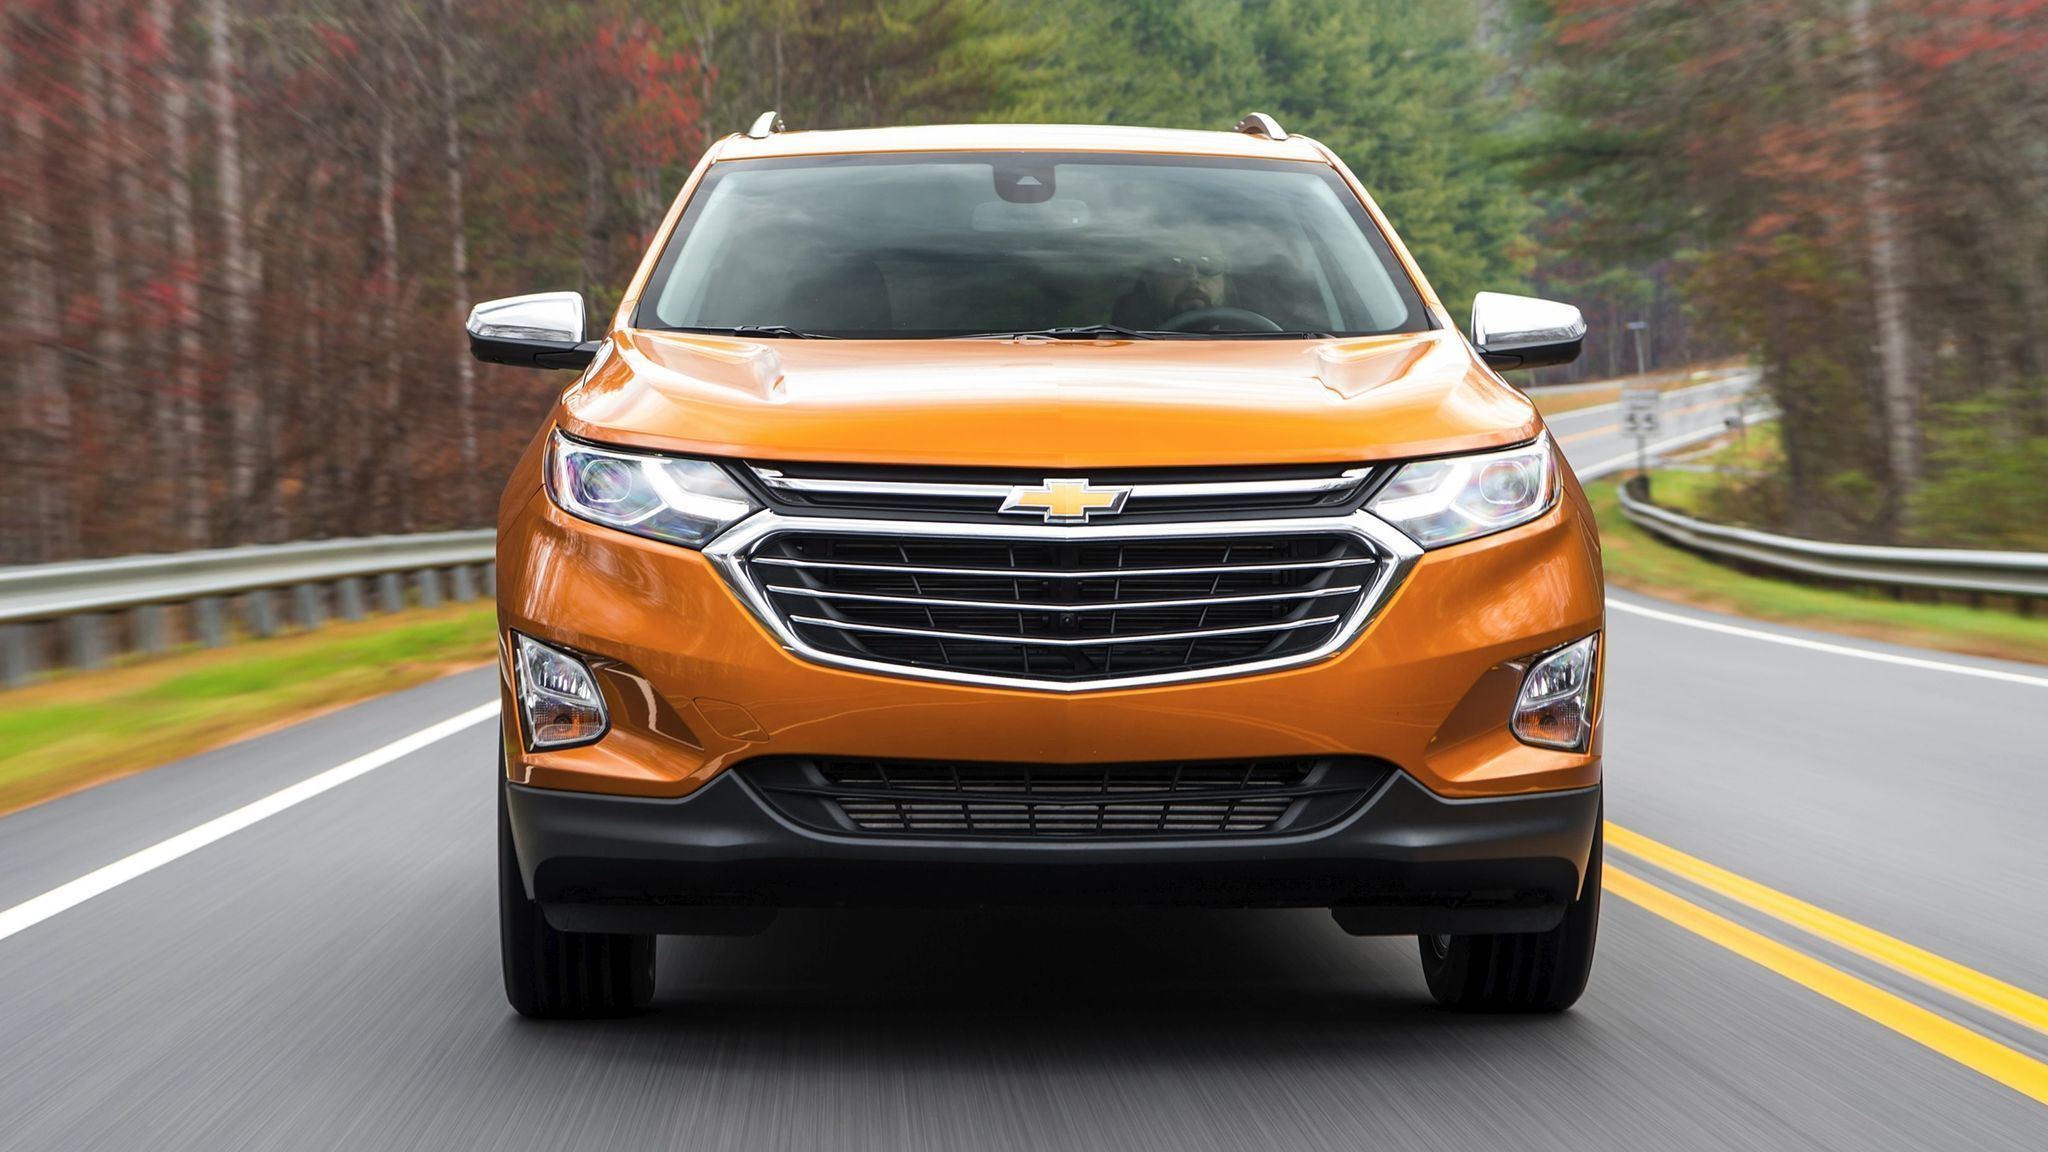 2018 Chevrolet Equinox Smaller More Polished And Still Family 87 Chevy Dual Tank Schematic Functional The San Diego Union Tribune